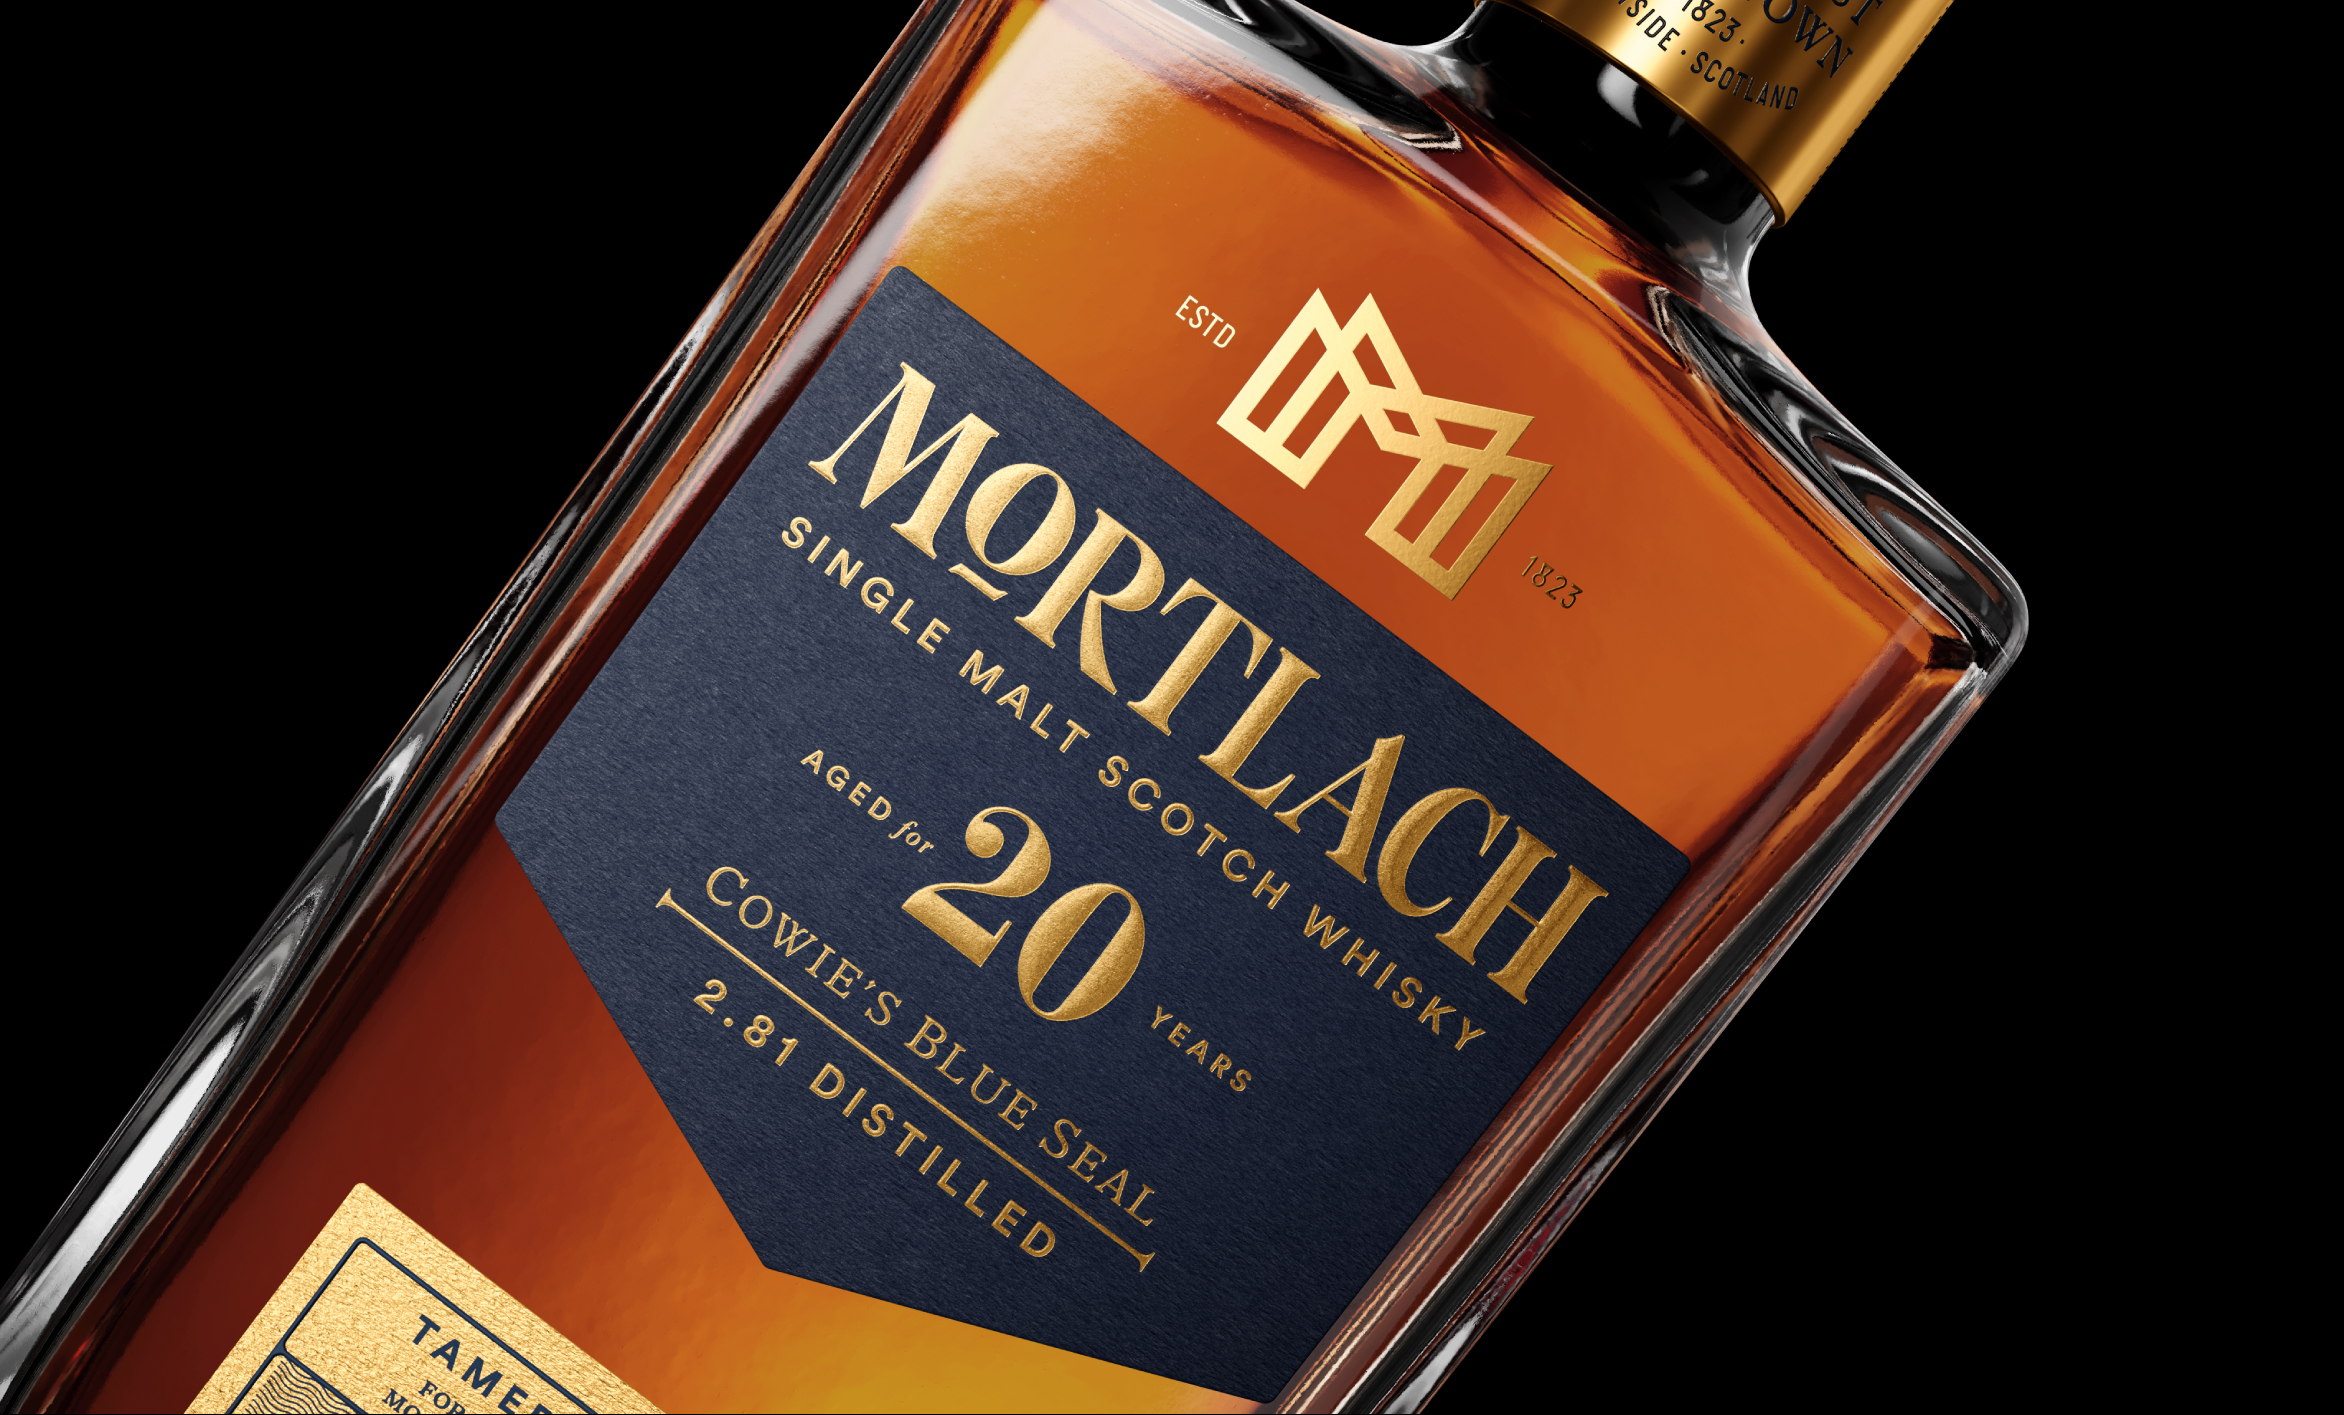 Mortlach Single Malt Scotch Whisky, Unleashing 'The Beast of Dufftown' / World Brand Design Society